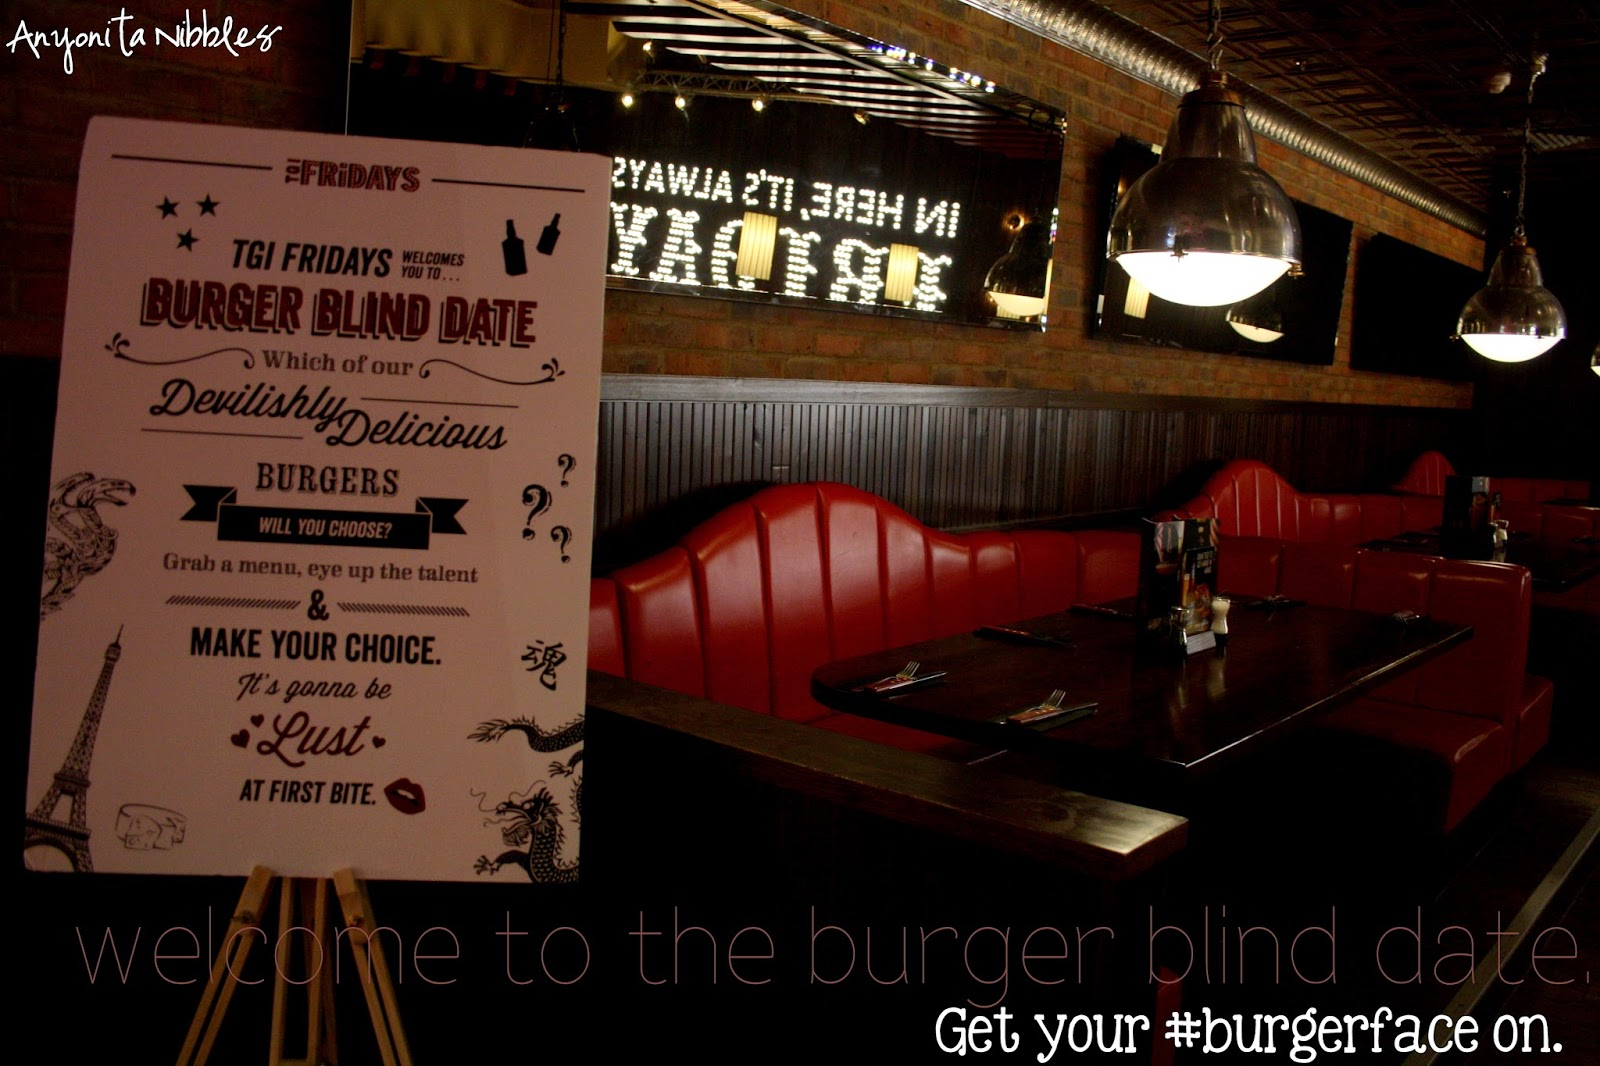 TGI Friday's Burger Blind Date. Get your #burgerface on.